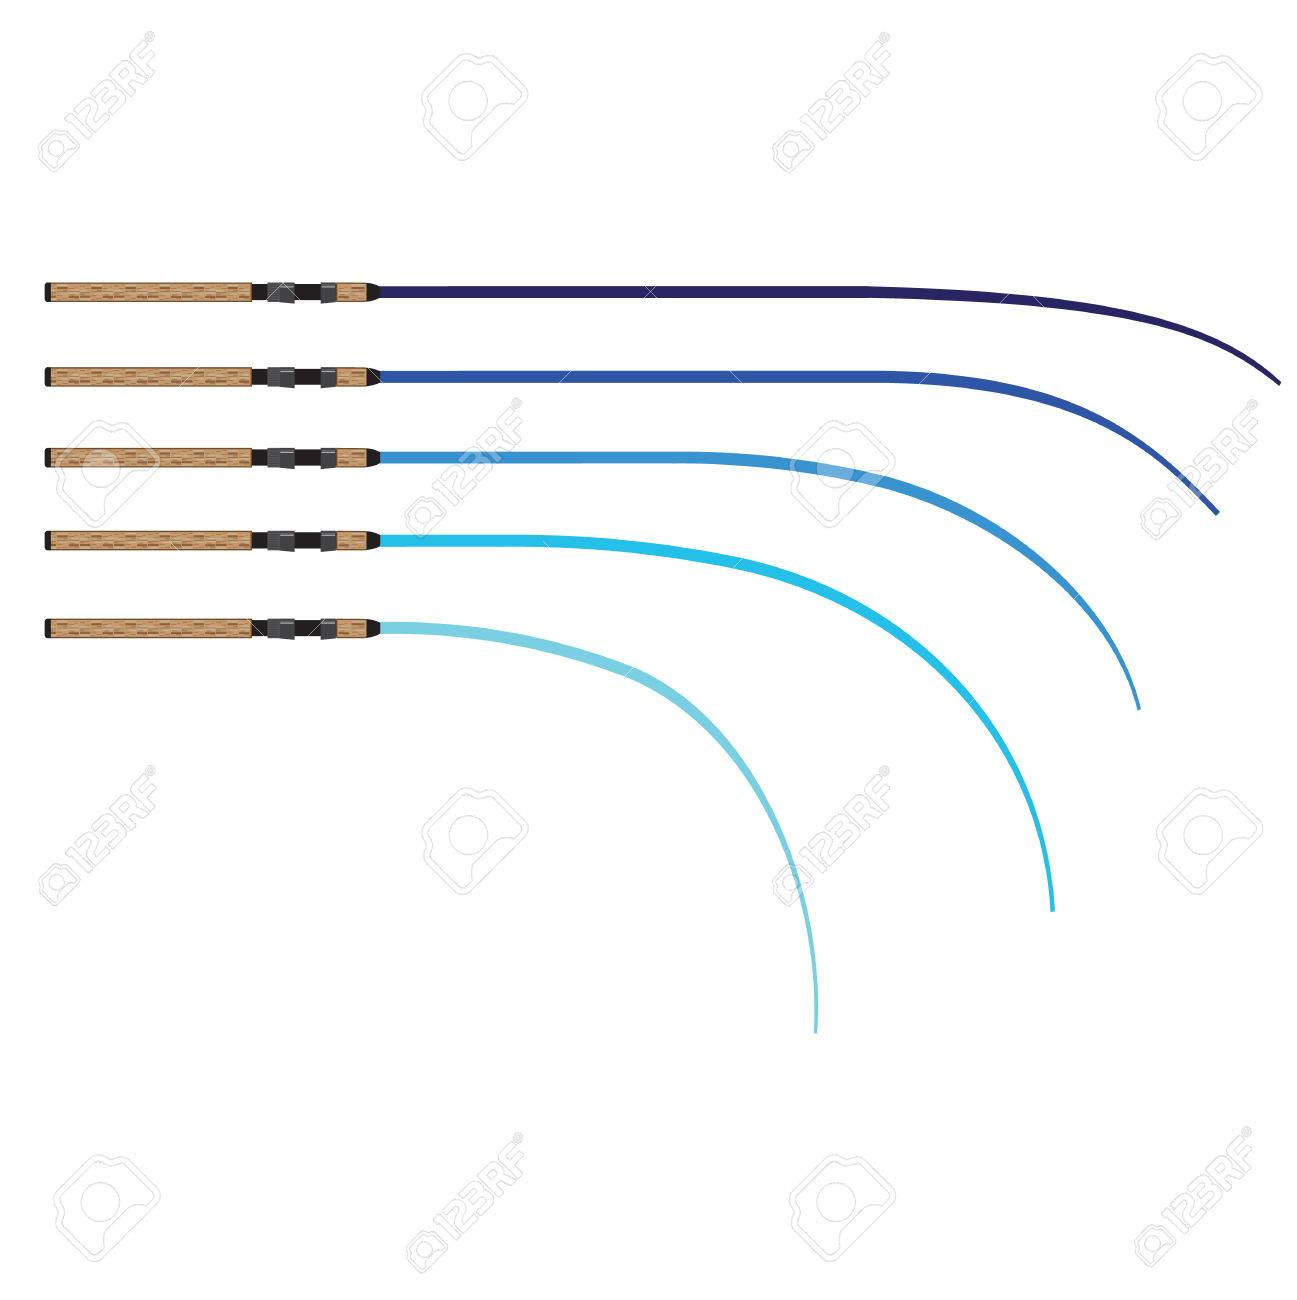 Download Bent Fishing Rod Vector Curved Rod Blanks Illustration Royalty Free Cliparts Vectors And Stock Illustration Image 68044498